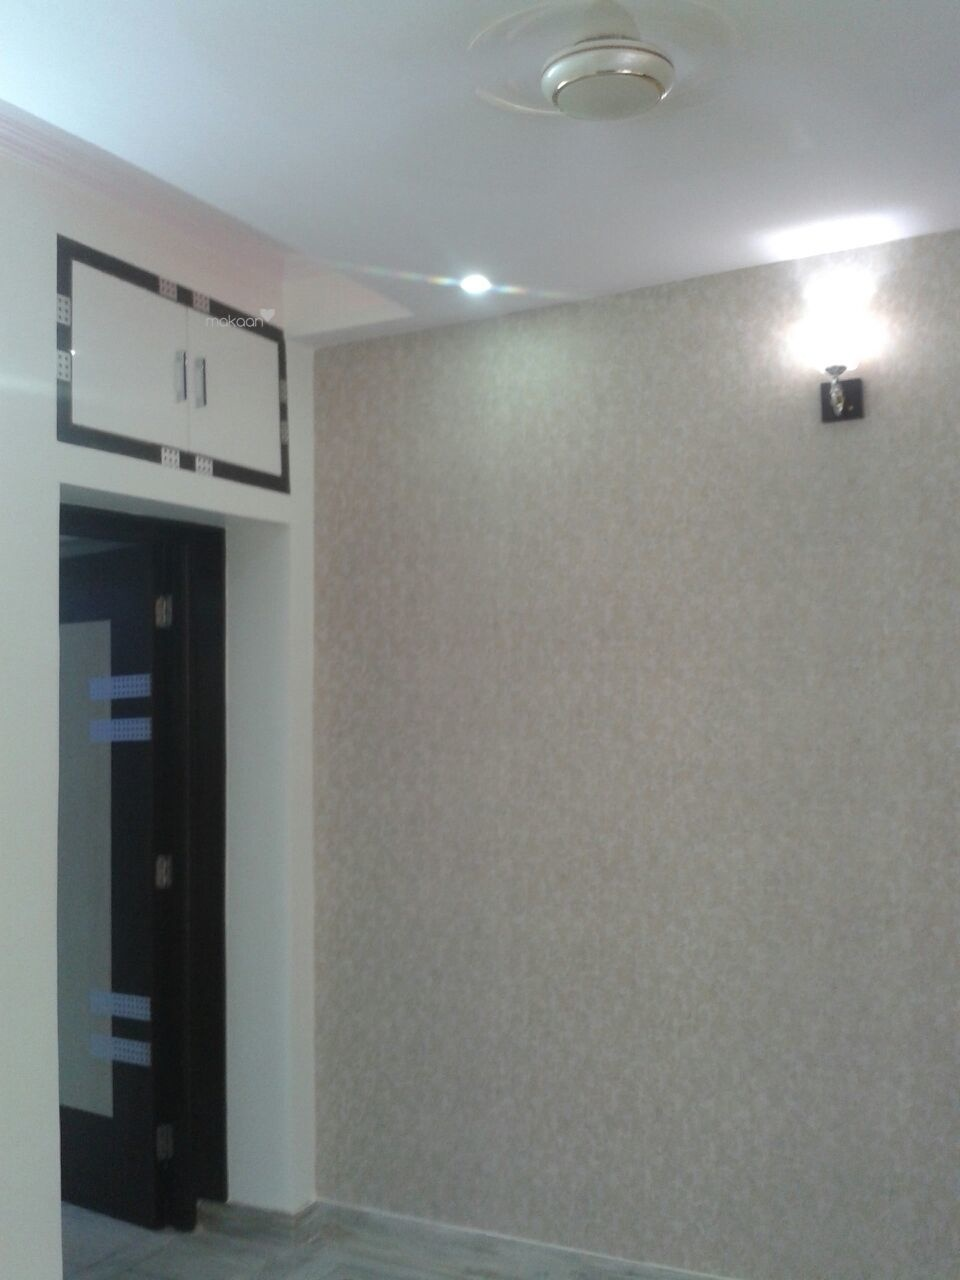 870 sq ft 2BHK 2BHK+2T (870 sq ft) Property By INVESTORS HOUSE PROPMART In Project, Sector 4 Vaishali